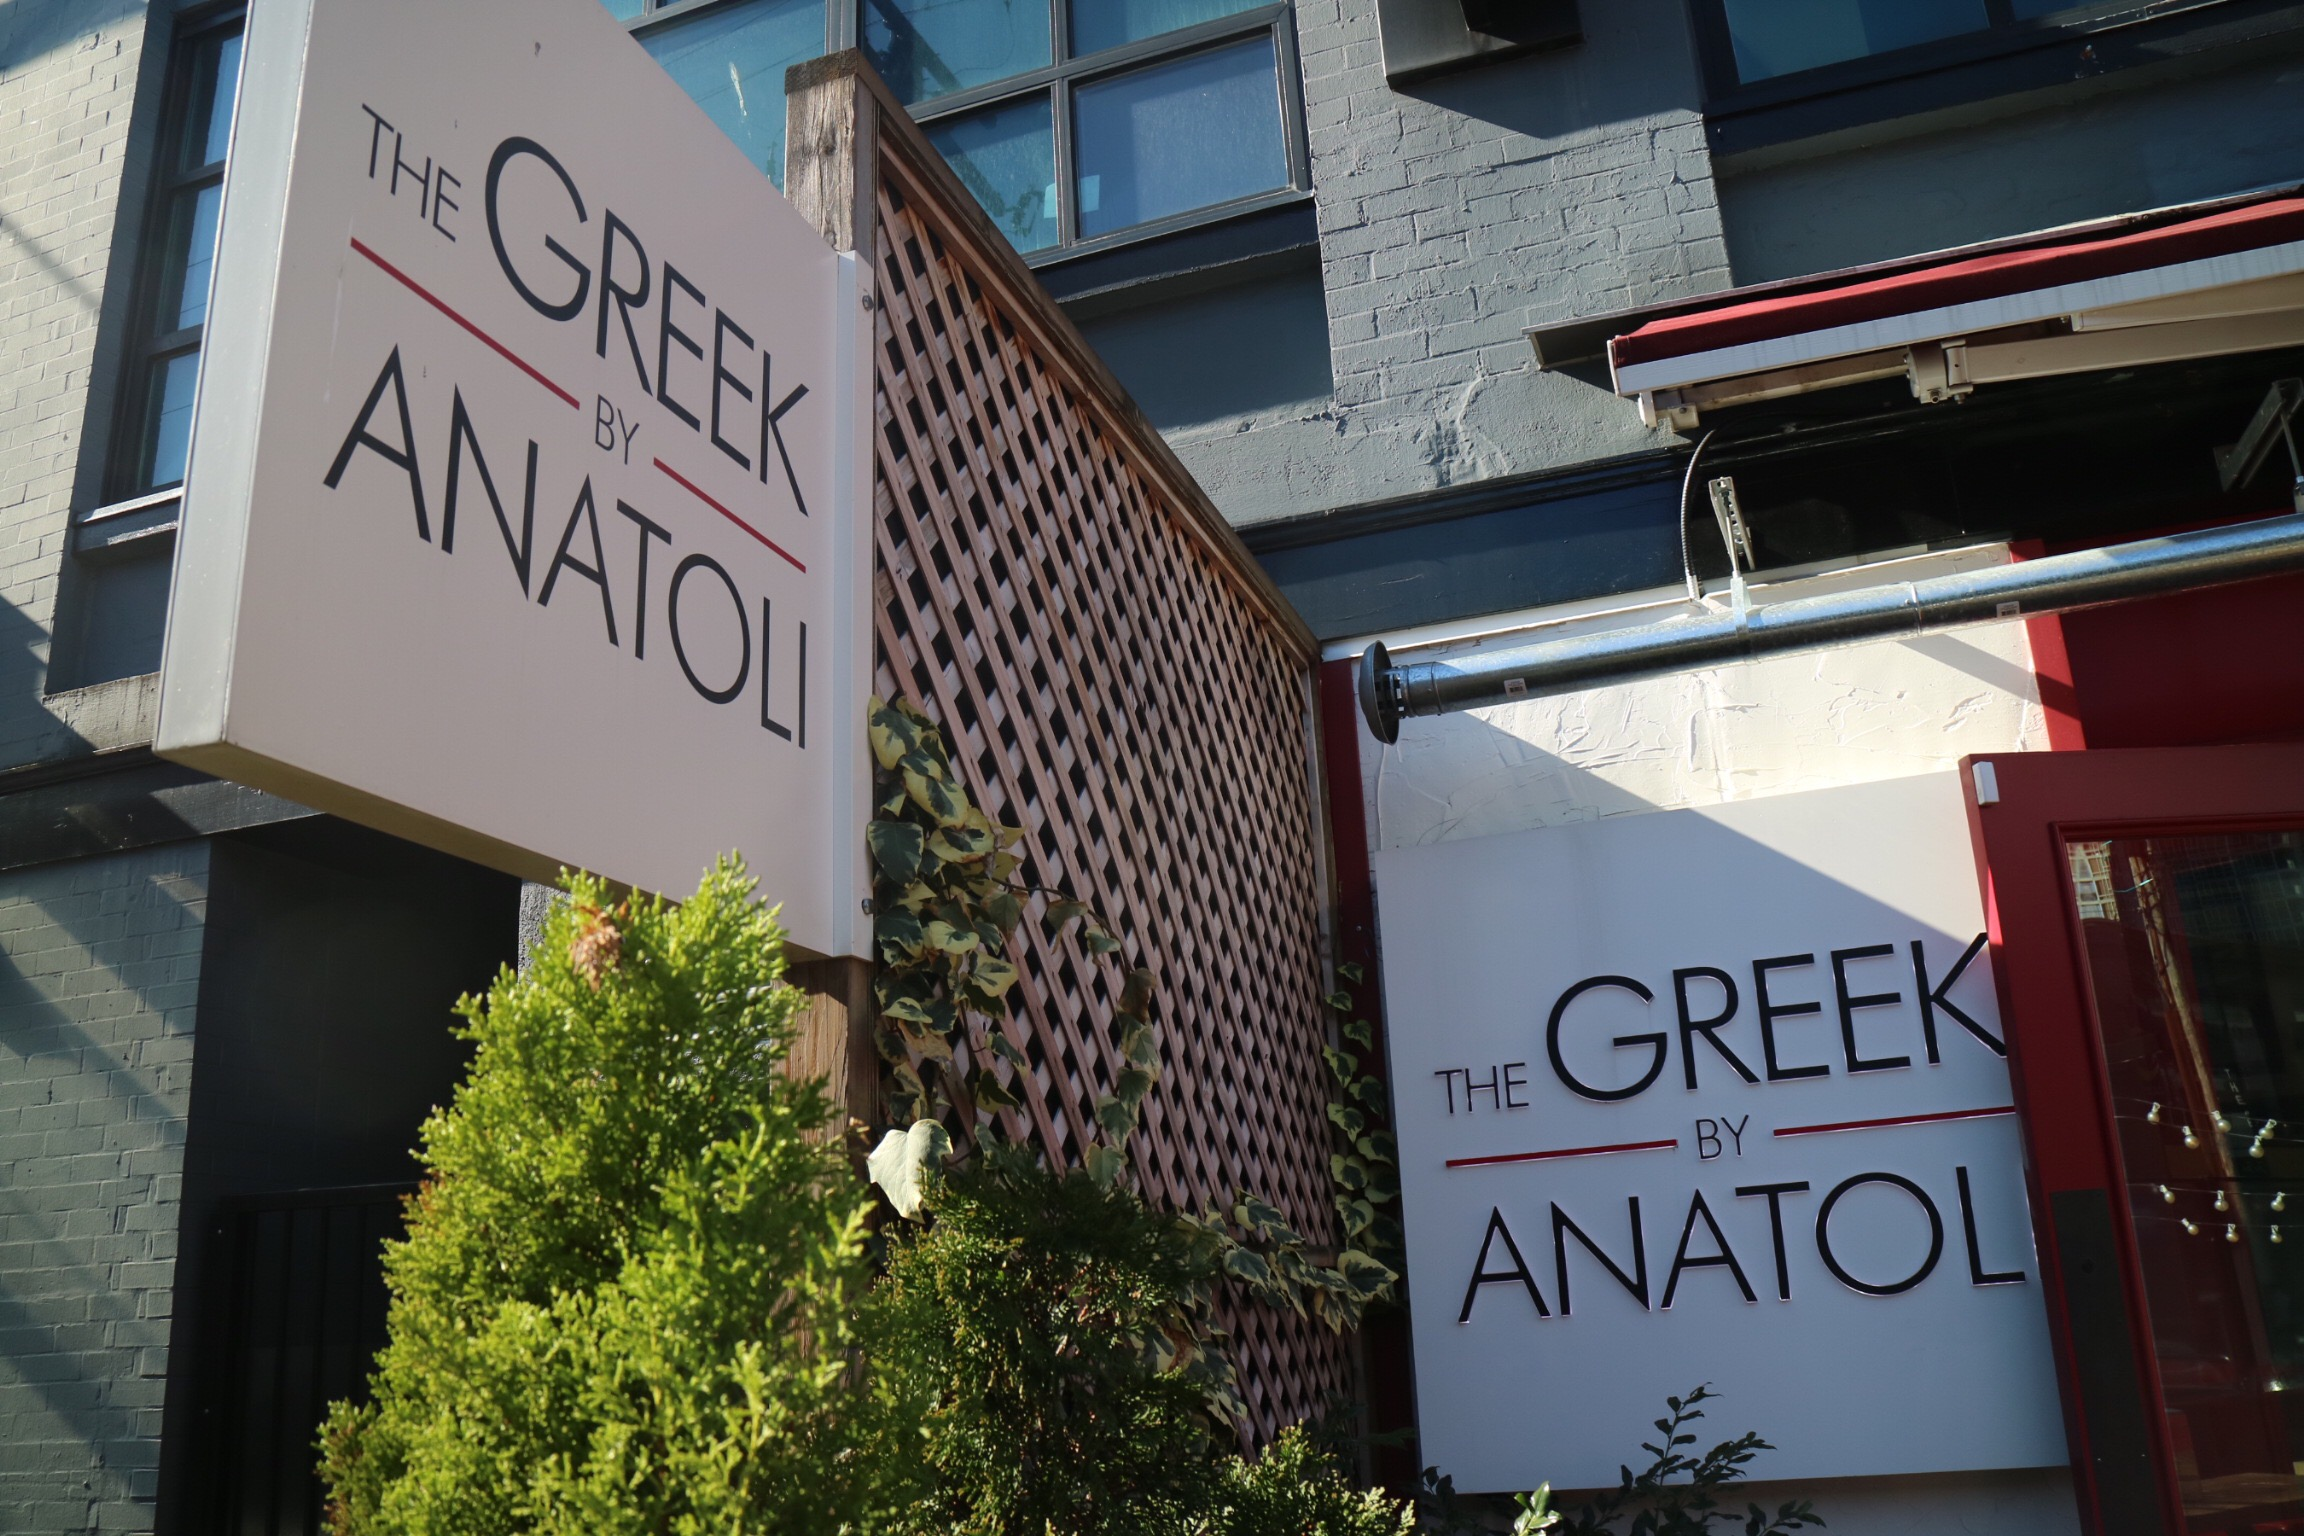 The Greek by Anatoli in Yaletown